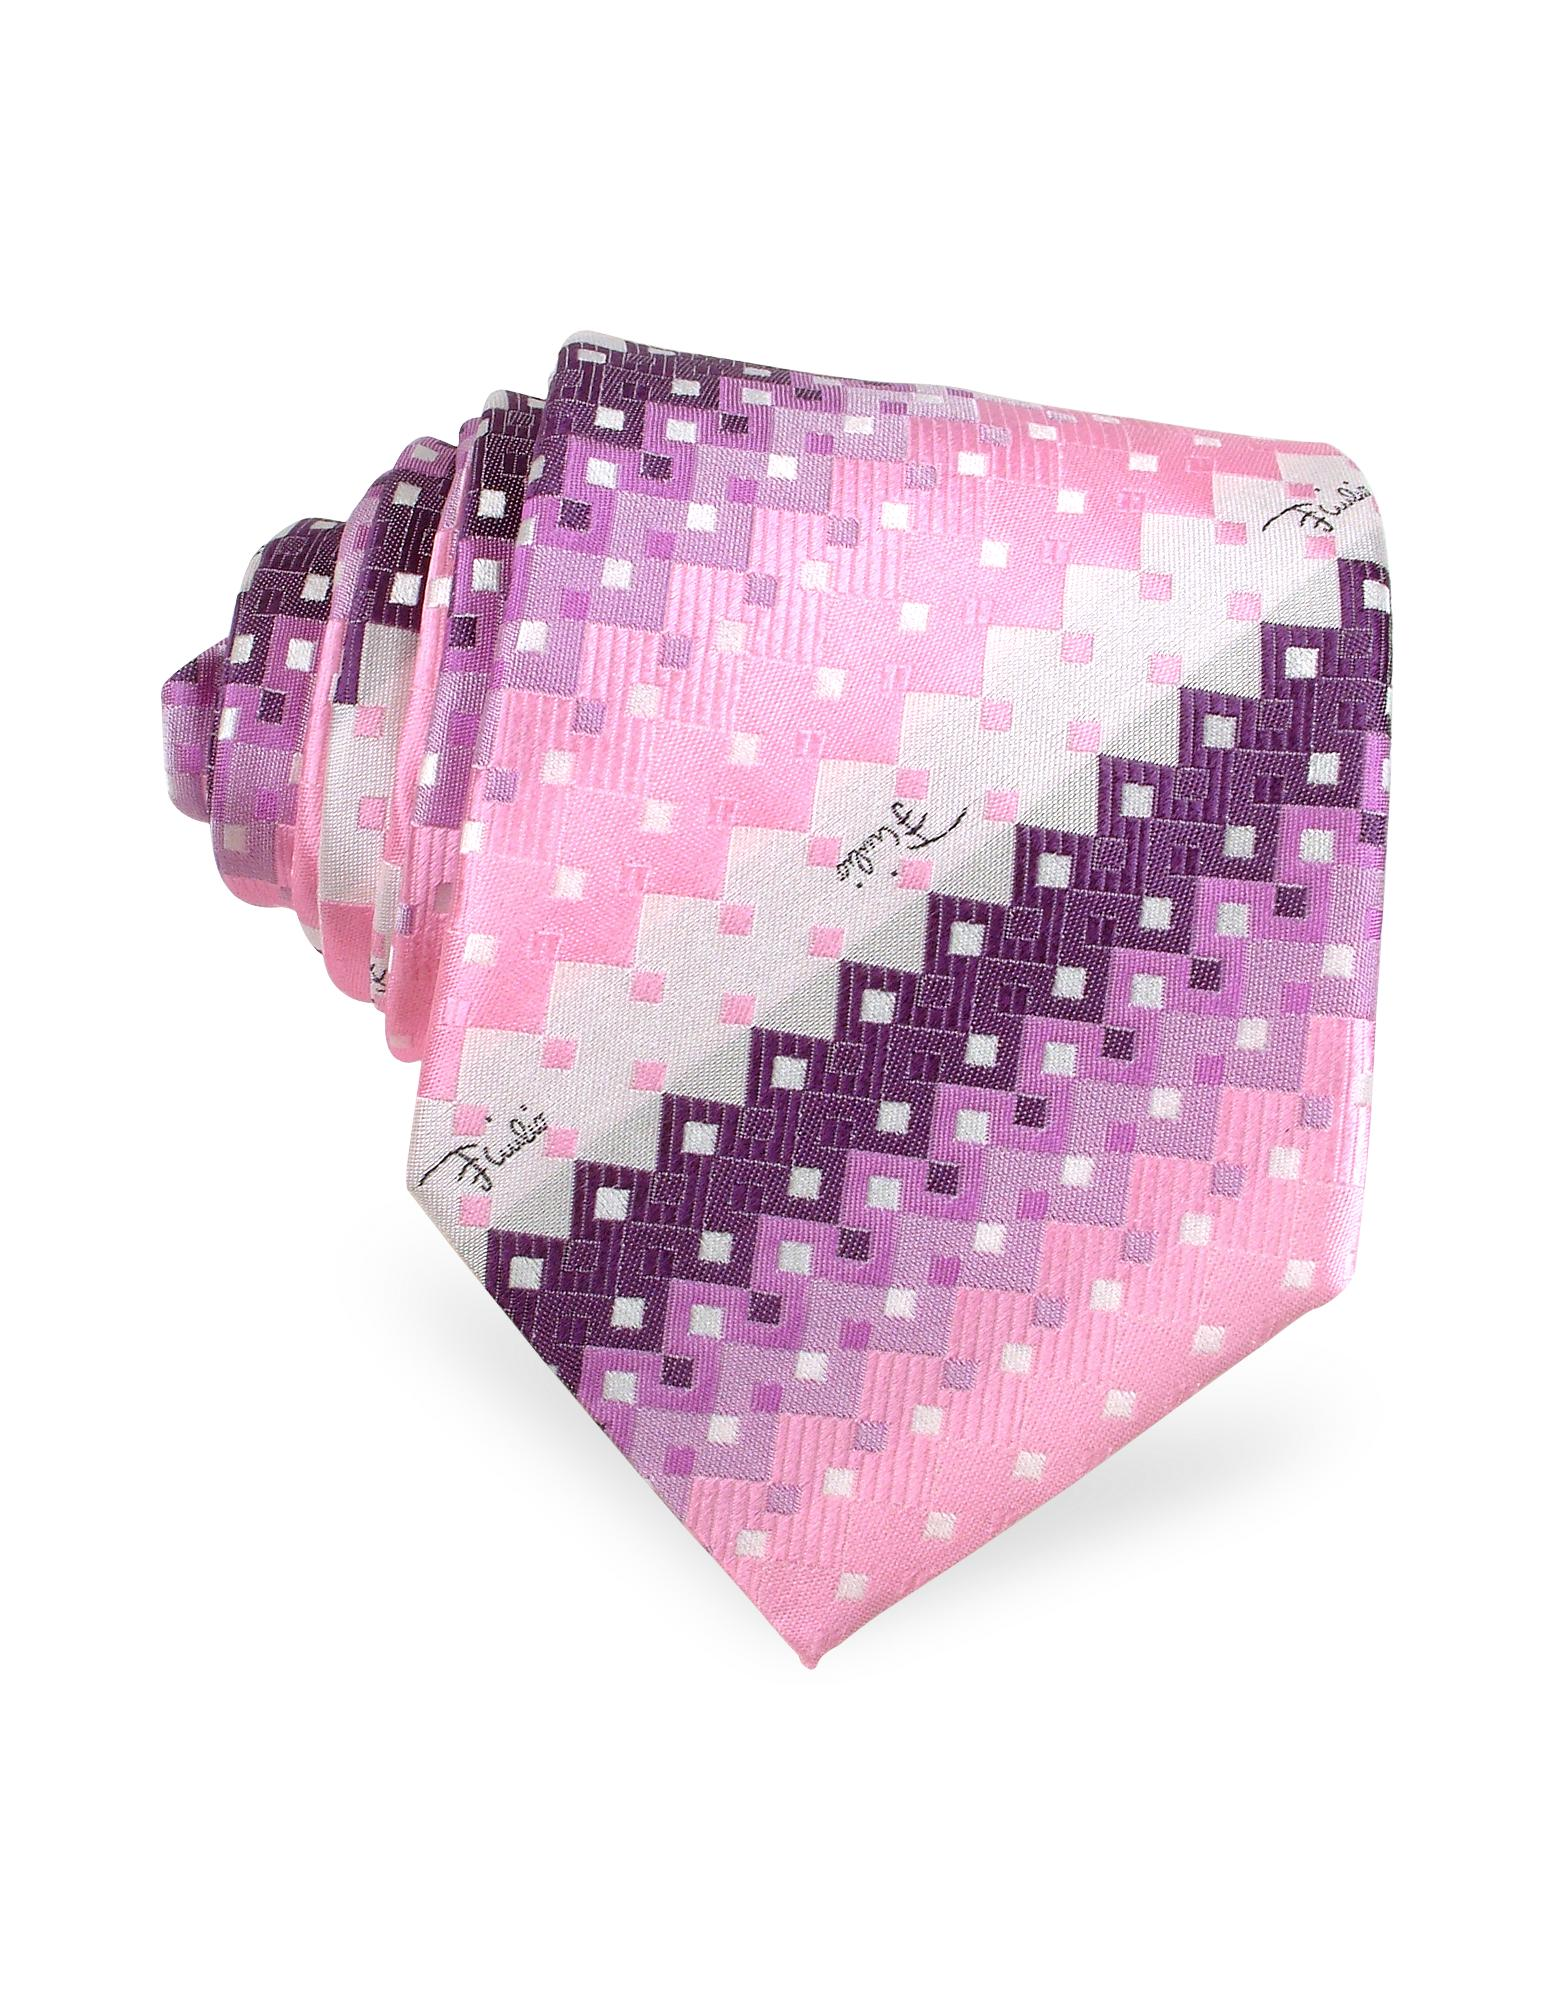 Emilio Pucci  Geometric Square Patterned Silk Tie